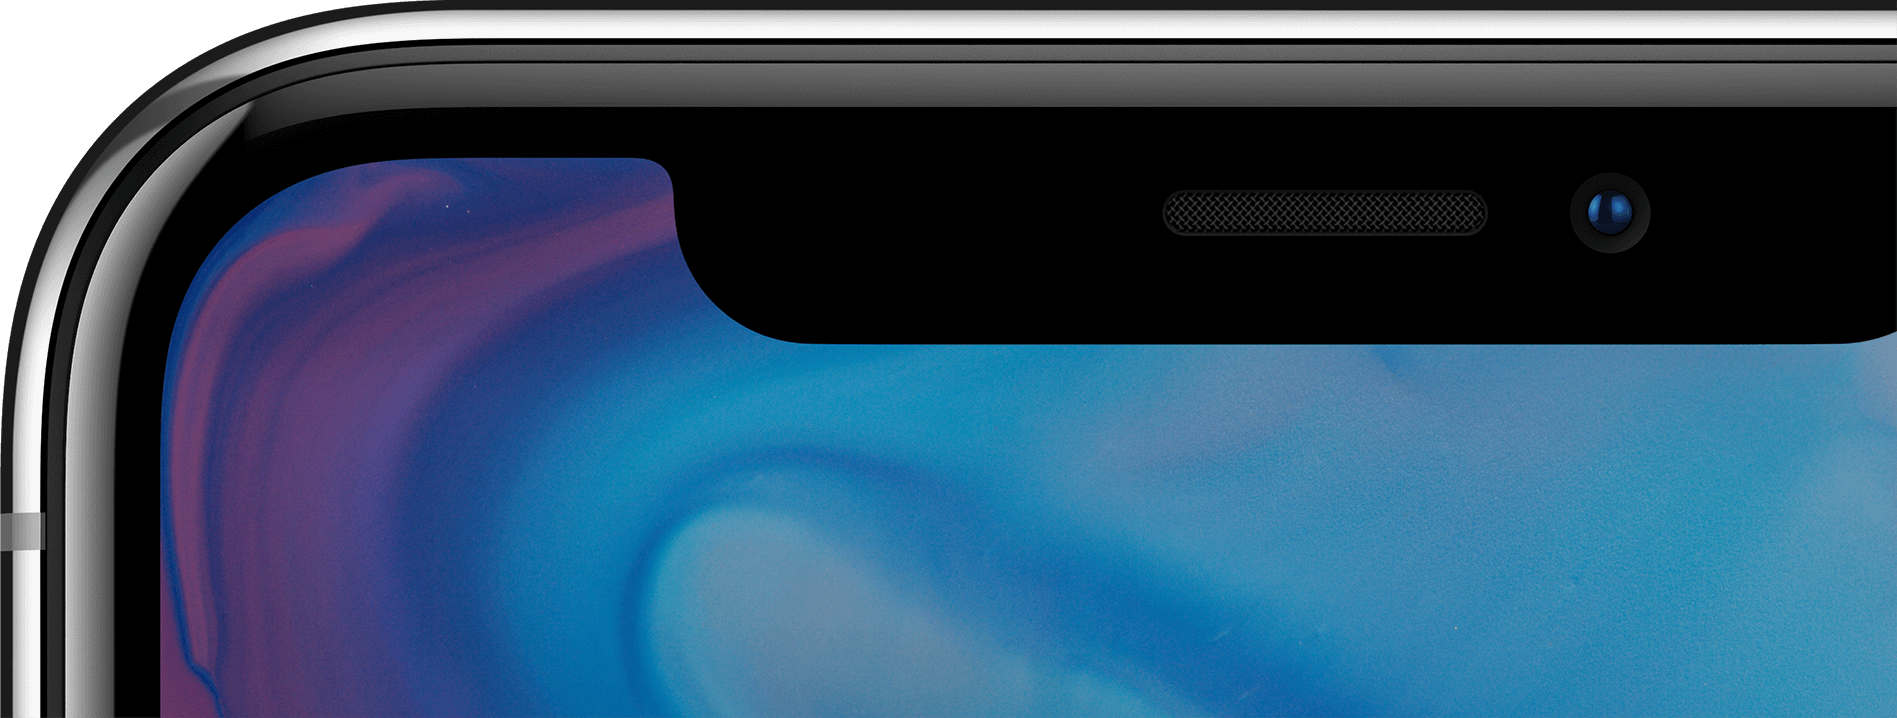 iPhone X device is all screen